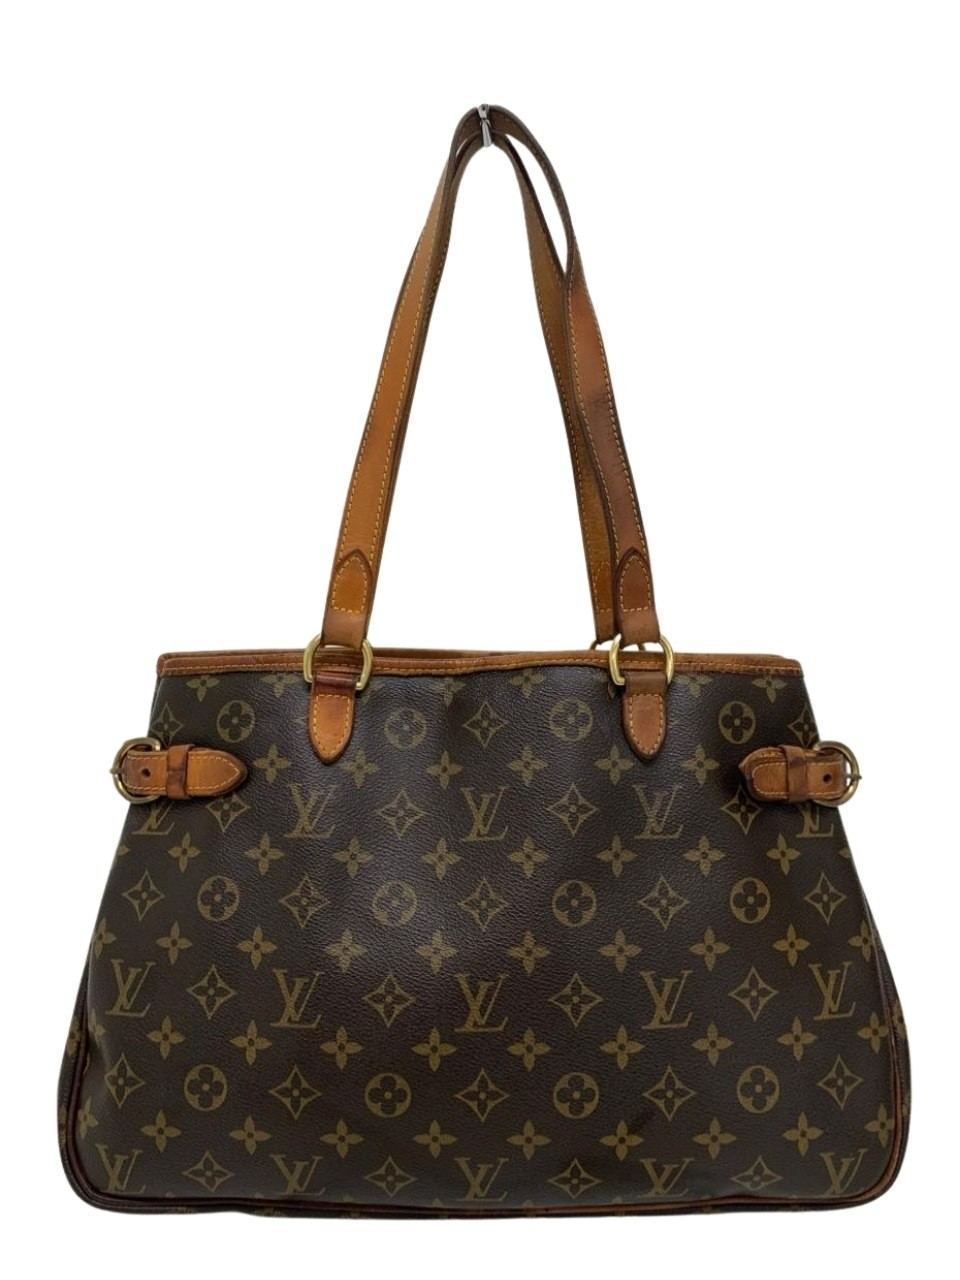 Bolsa Louis Vuitton Batignolles Monogram